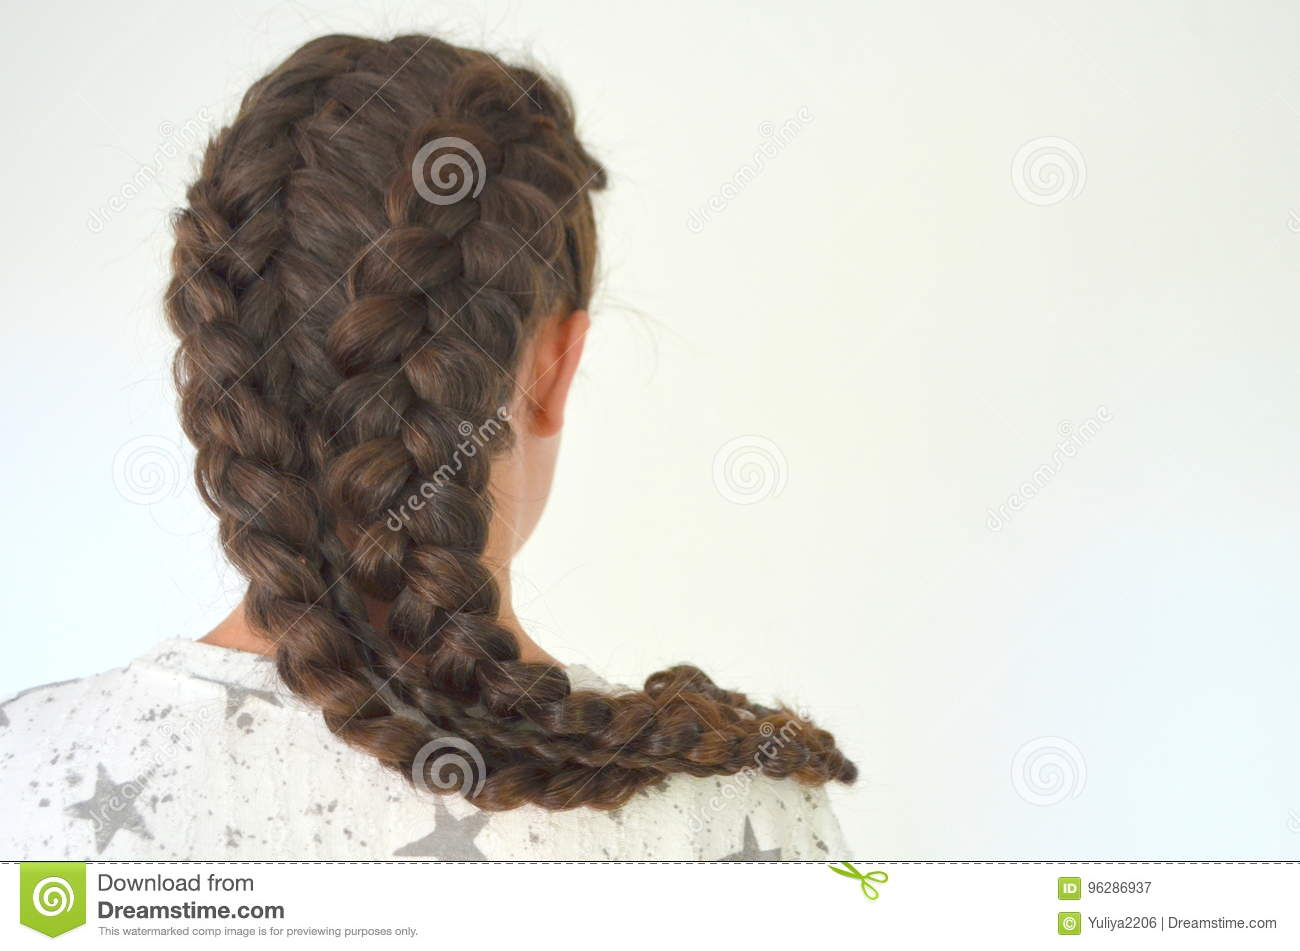 Pigtails French with long hair